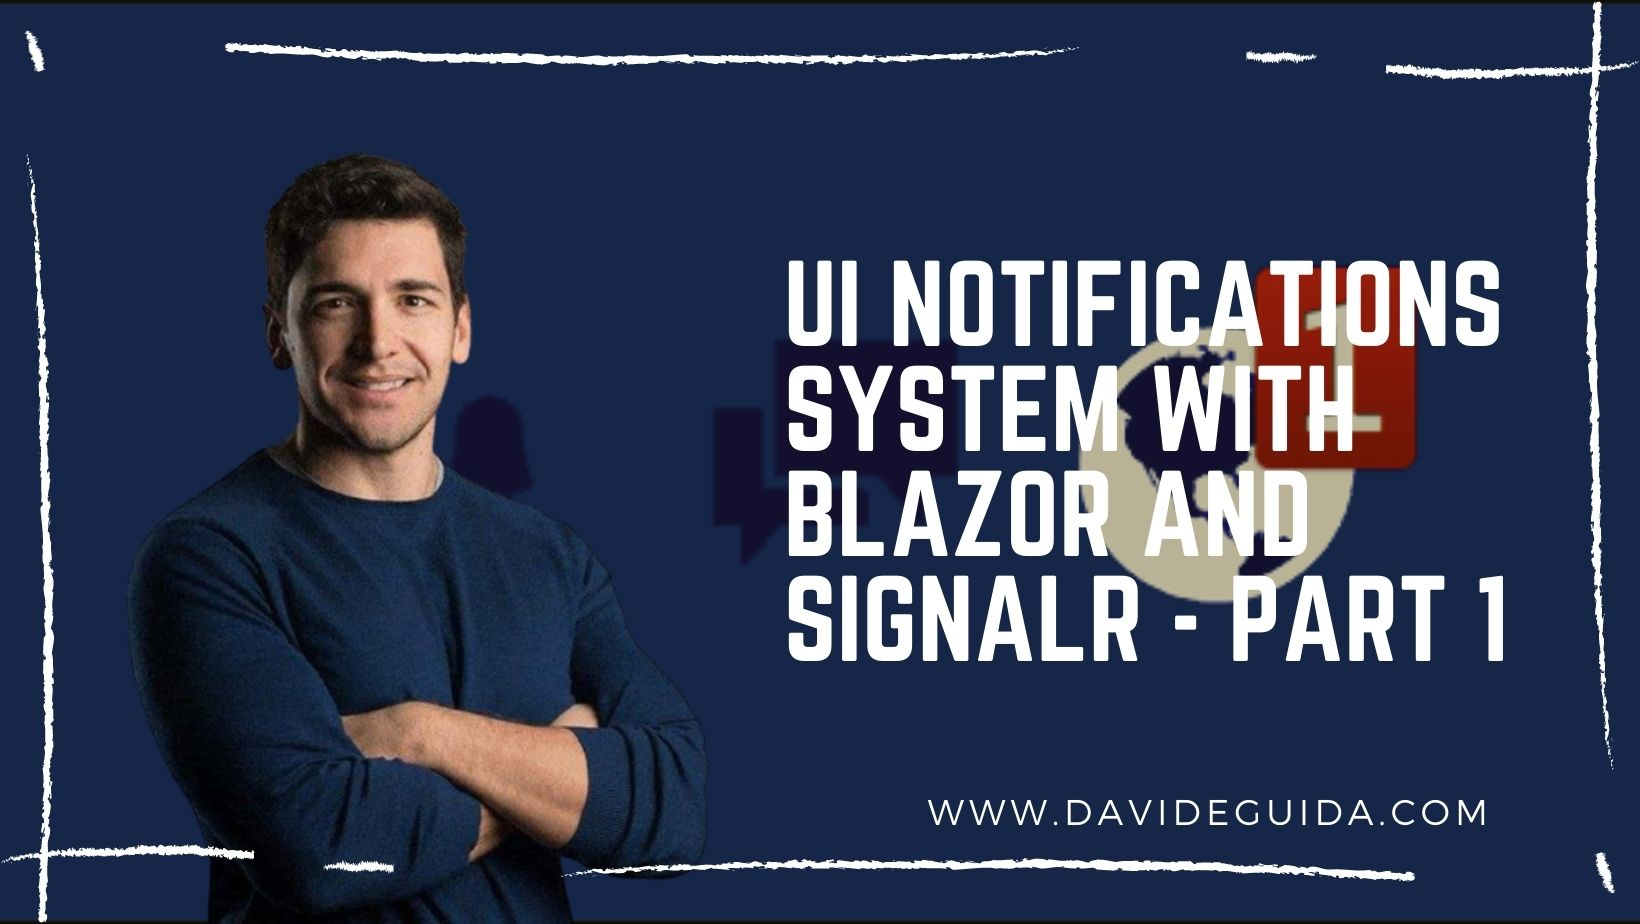 UI notifications system with Blazor and SignalR - part 1